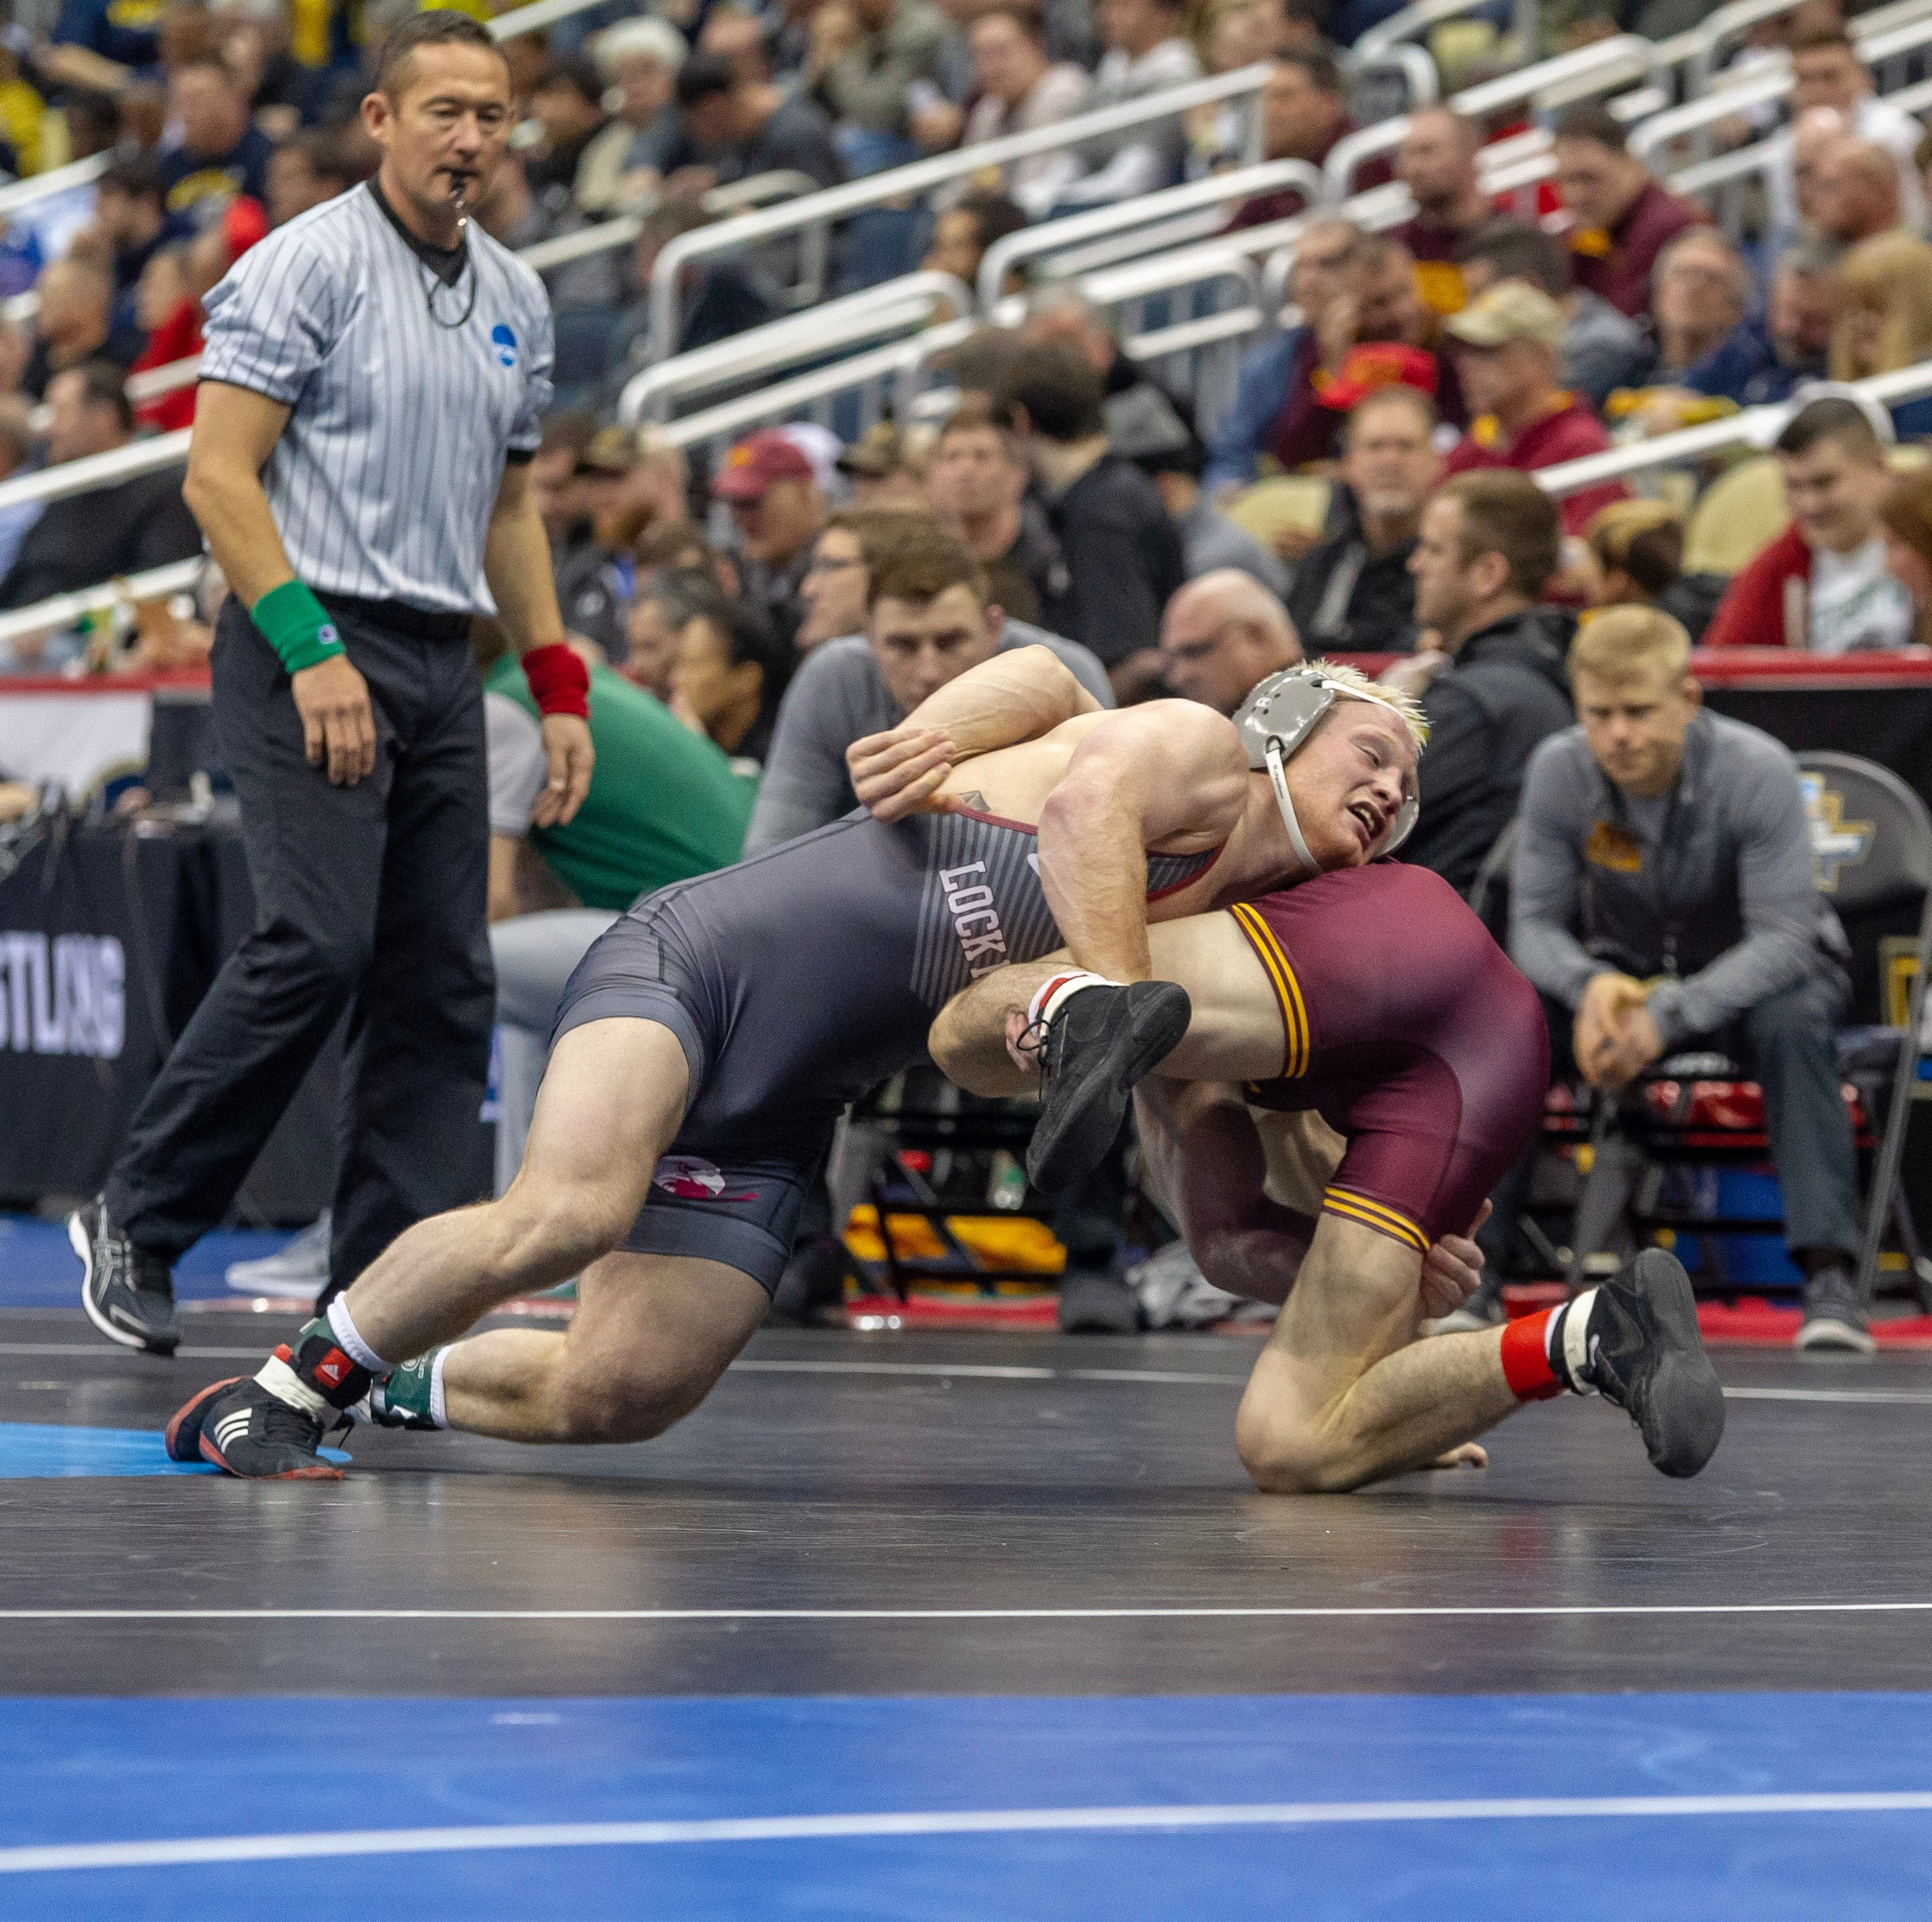 Chance Marsteller rebounds big, shoots for third place in NCAA Wrestling Championships